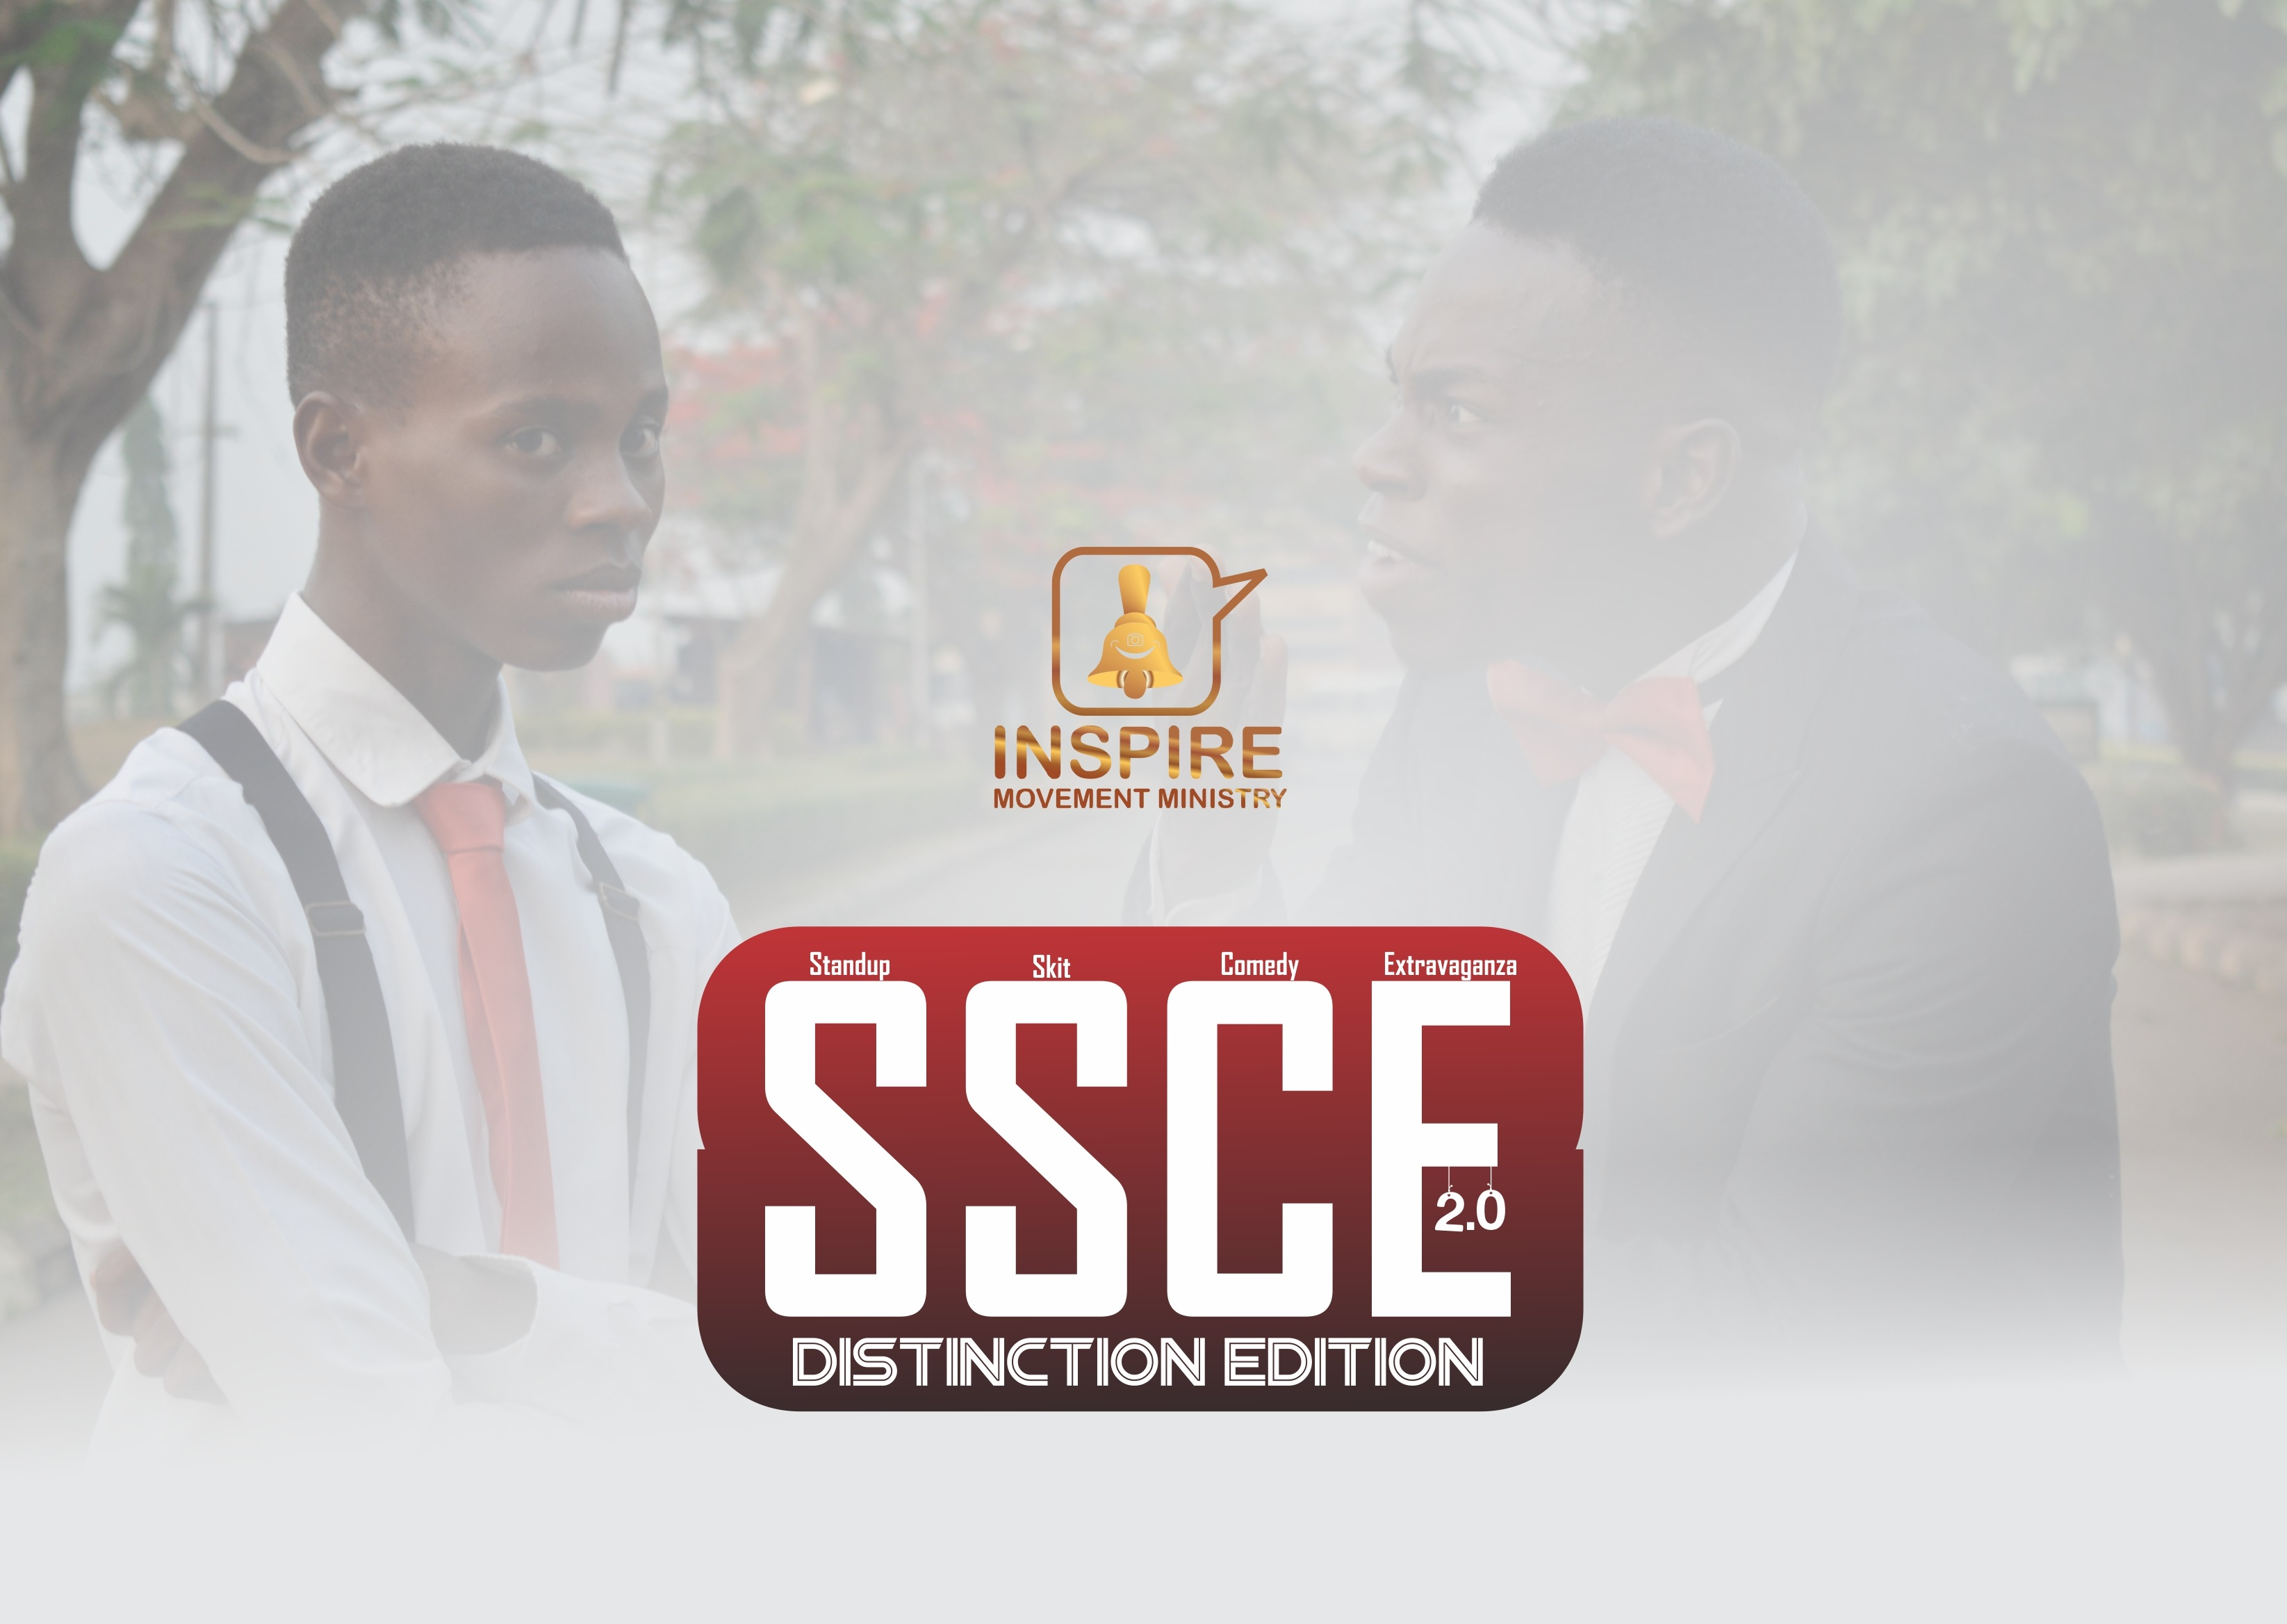 STANDUP SKIT COMEDY EXTRAVAGANZA (SSCE)? Post free event in Nigeria using tickethub.ng, buy and sell tickets to event